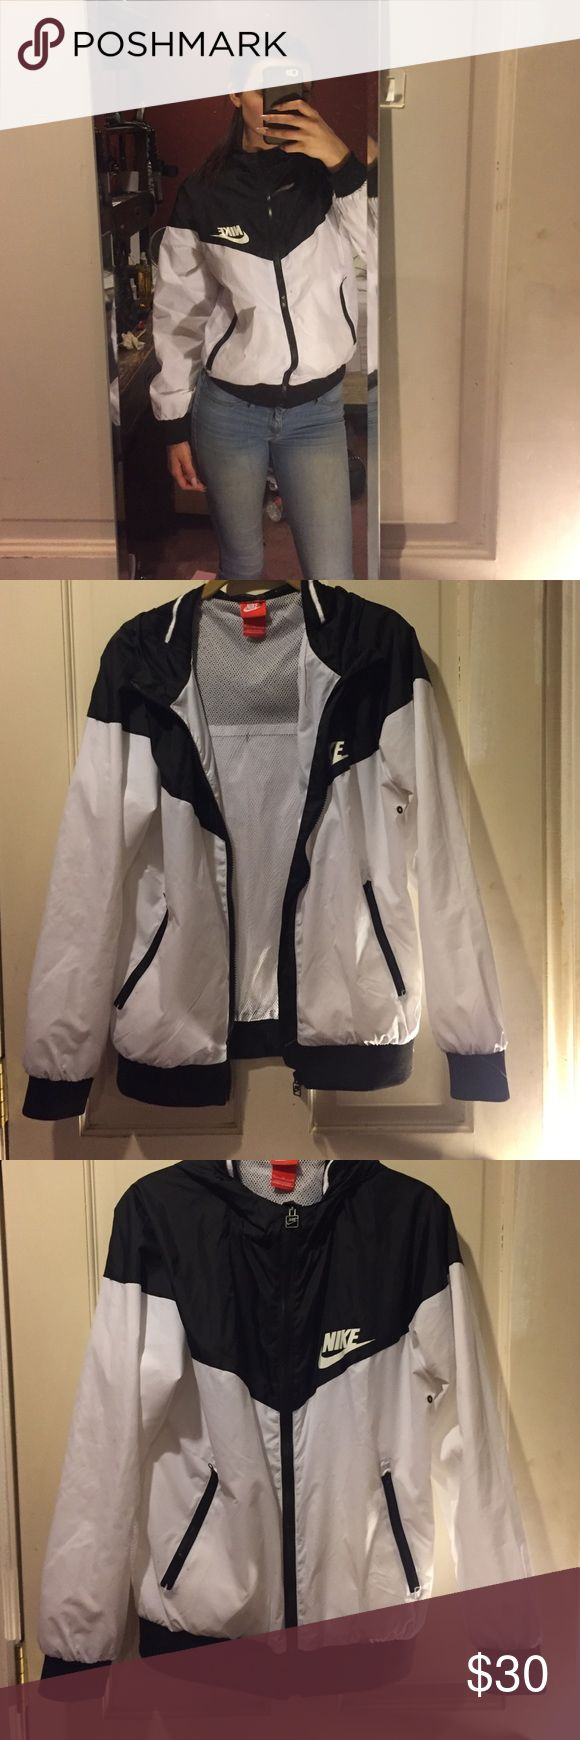 Nike coat This black and white Nike coat is super comfortable and light when worn. Nike Jackets & Coats Puffers